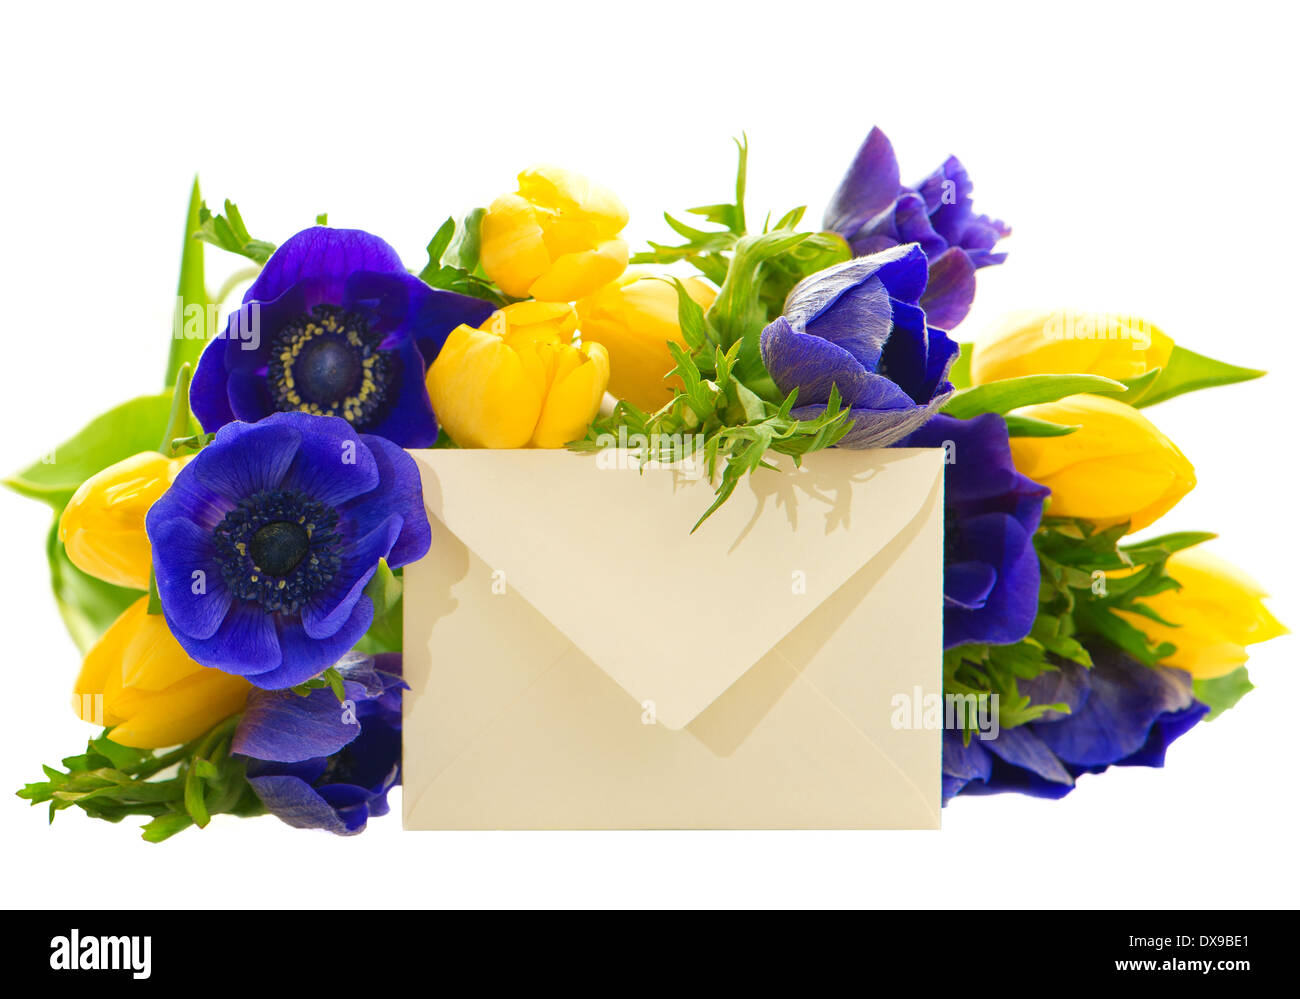 Blue anemone cut out stock images pictures alamy colorful flowers bouquet with gift card yellow tulips and blue anemone on white background izmirmasajfo